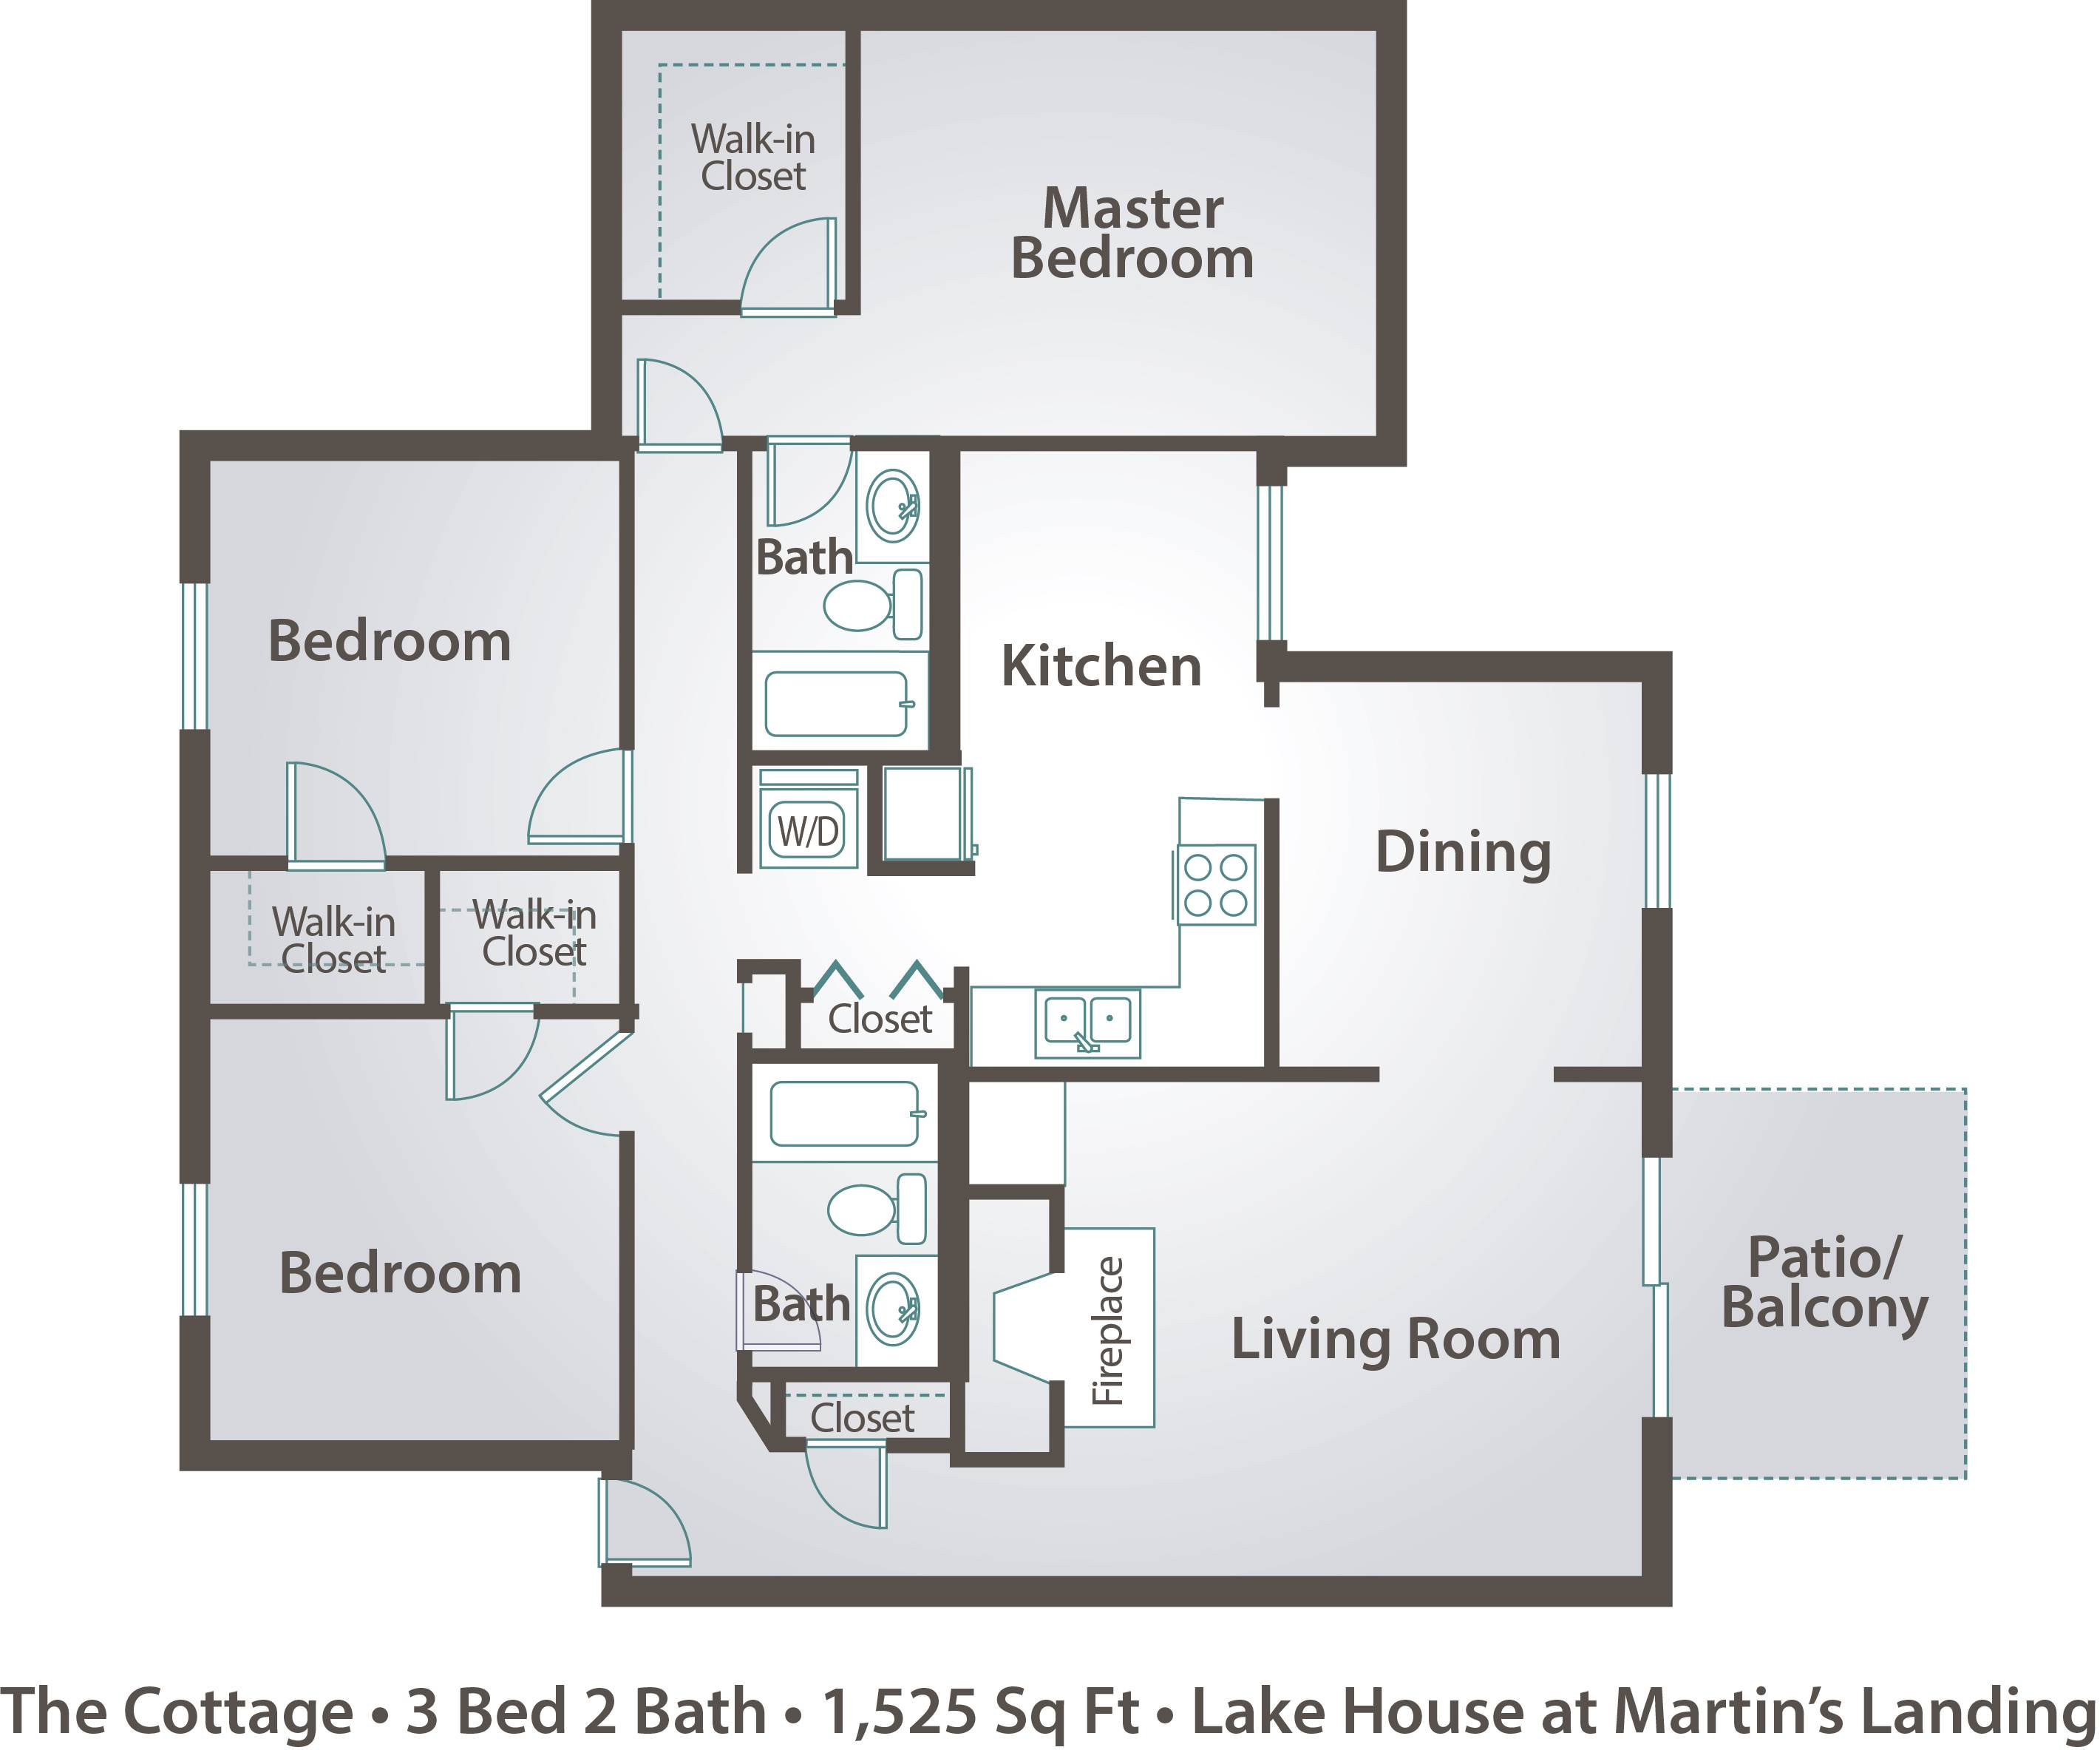 Apartment floor plans pricing the lake house at martin for 3 bedroom 3 bath house plans